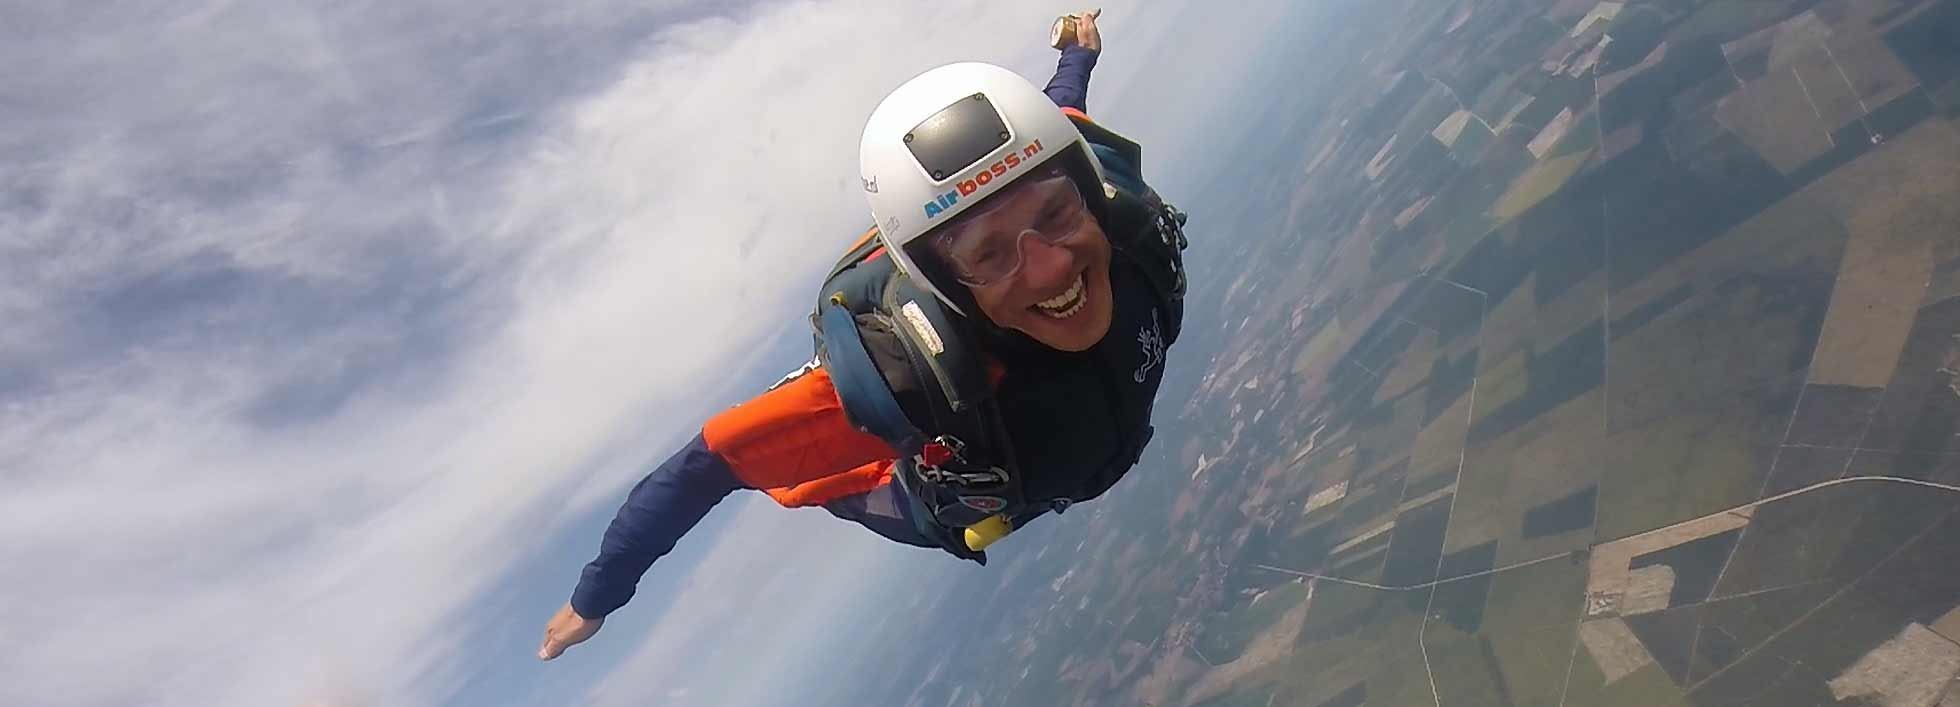 DO YOU WANT TO LEARN SKYDIVING?